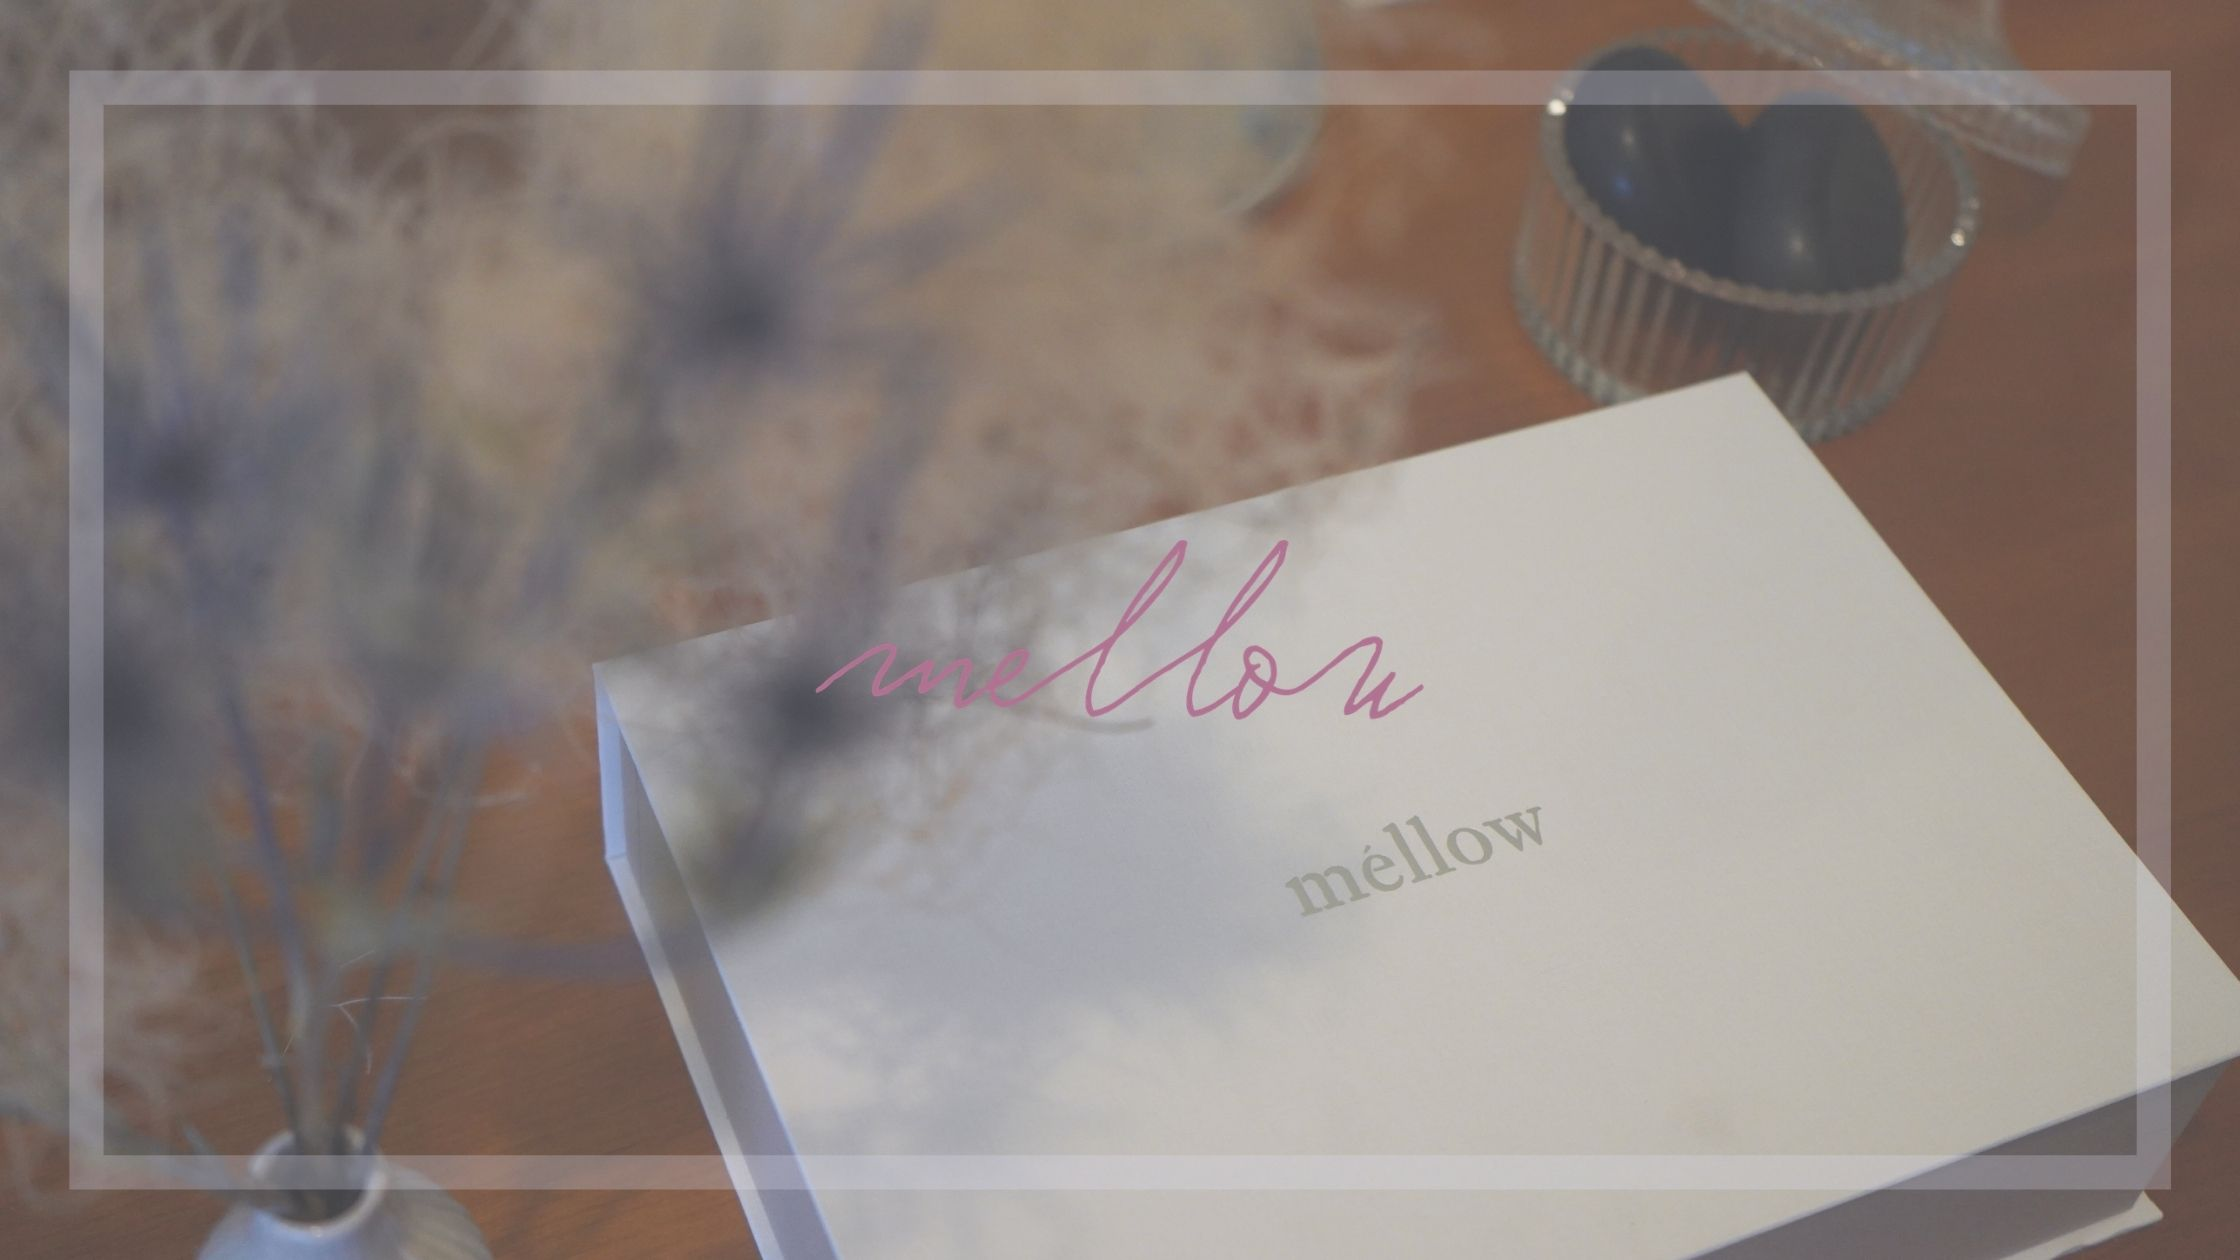 【méllow】#デコルテケア のススメ